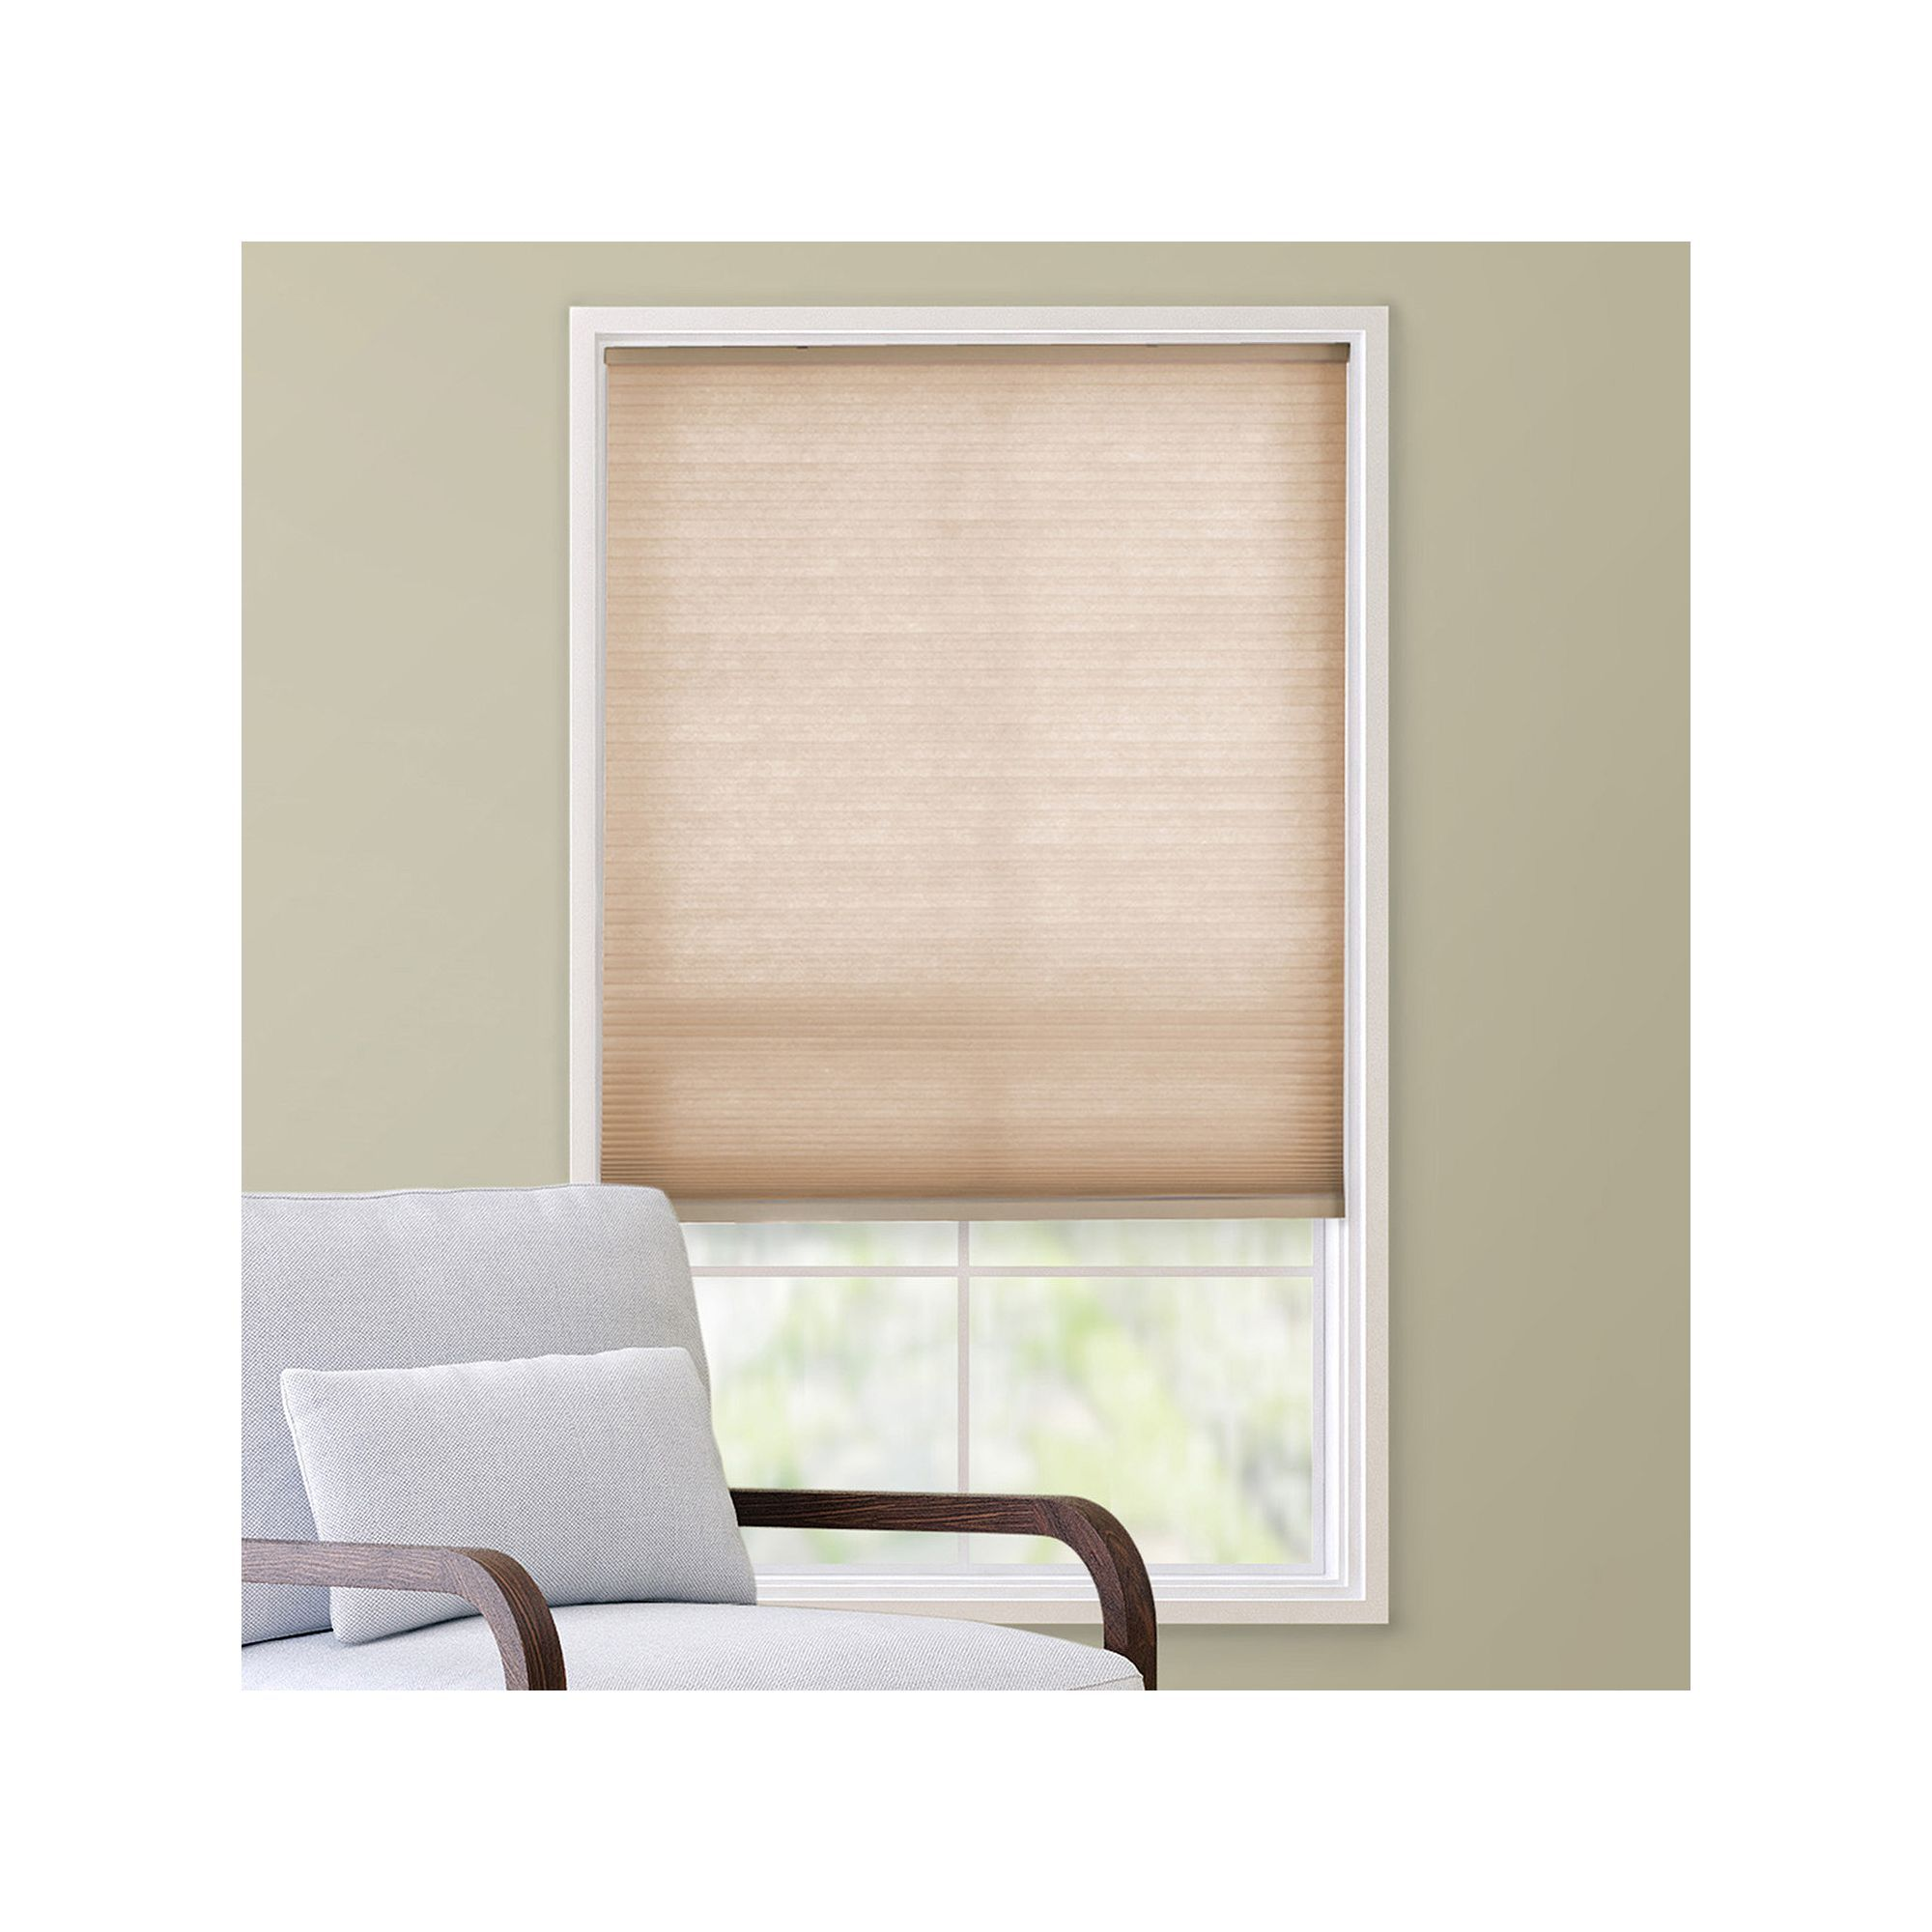 Outside window treatment ideas  custom cut to order cordless cellular shade  uu length white